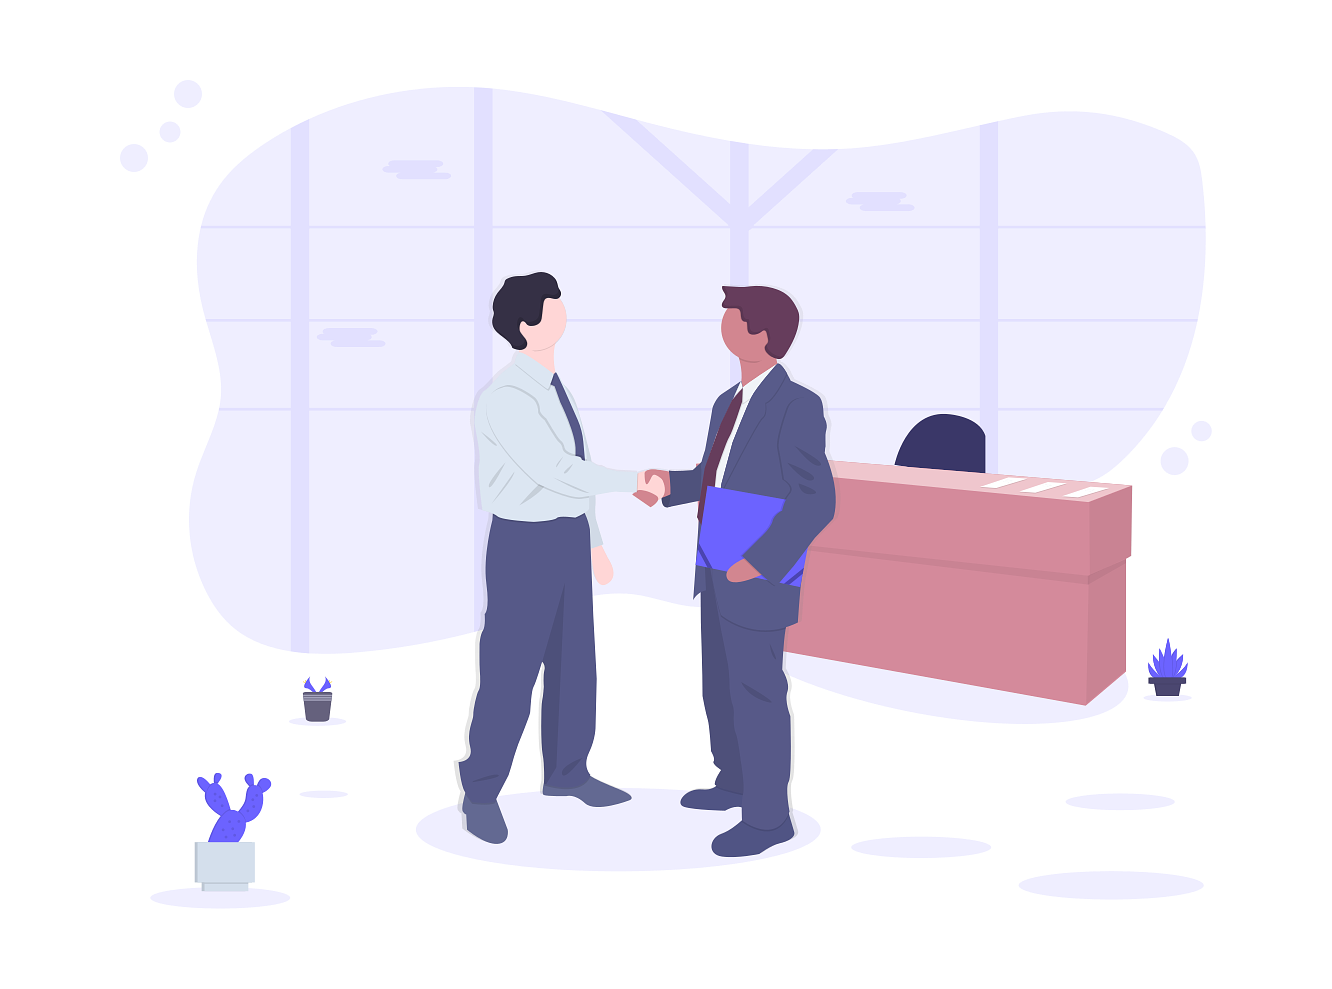 illustration of a sales deal closing with a handshake